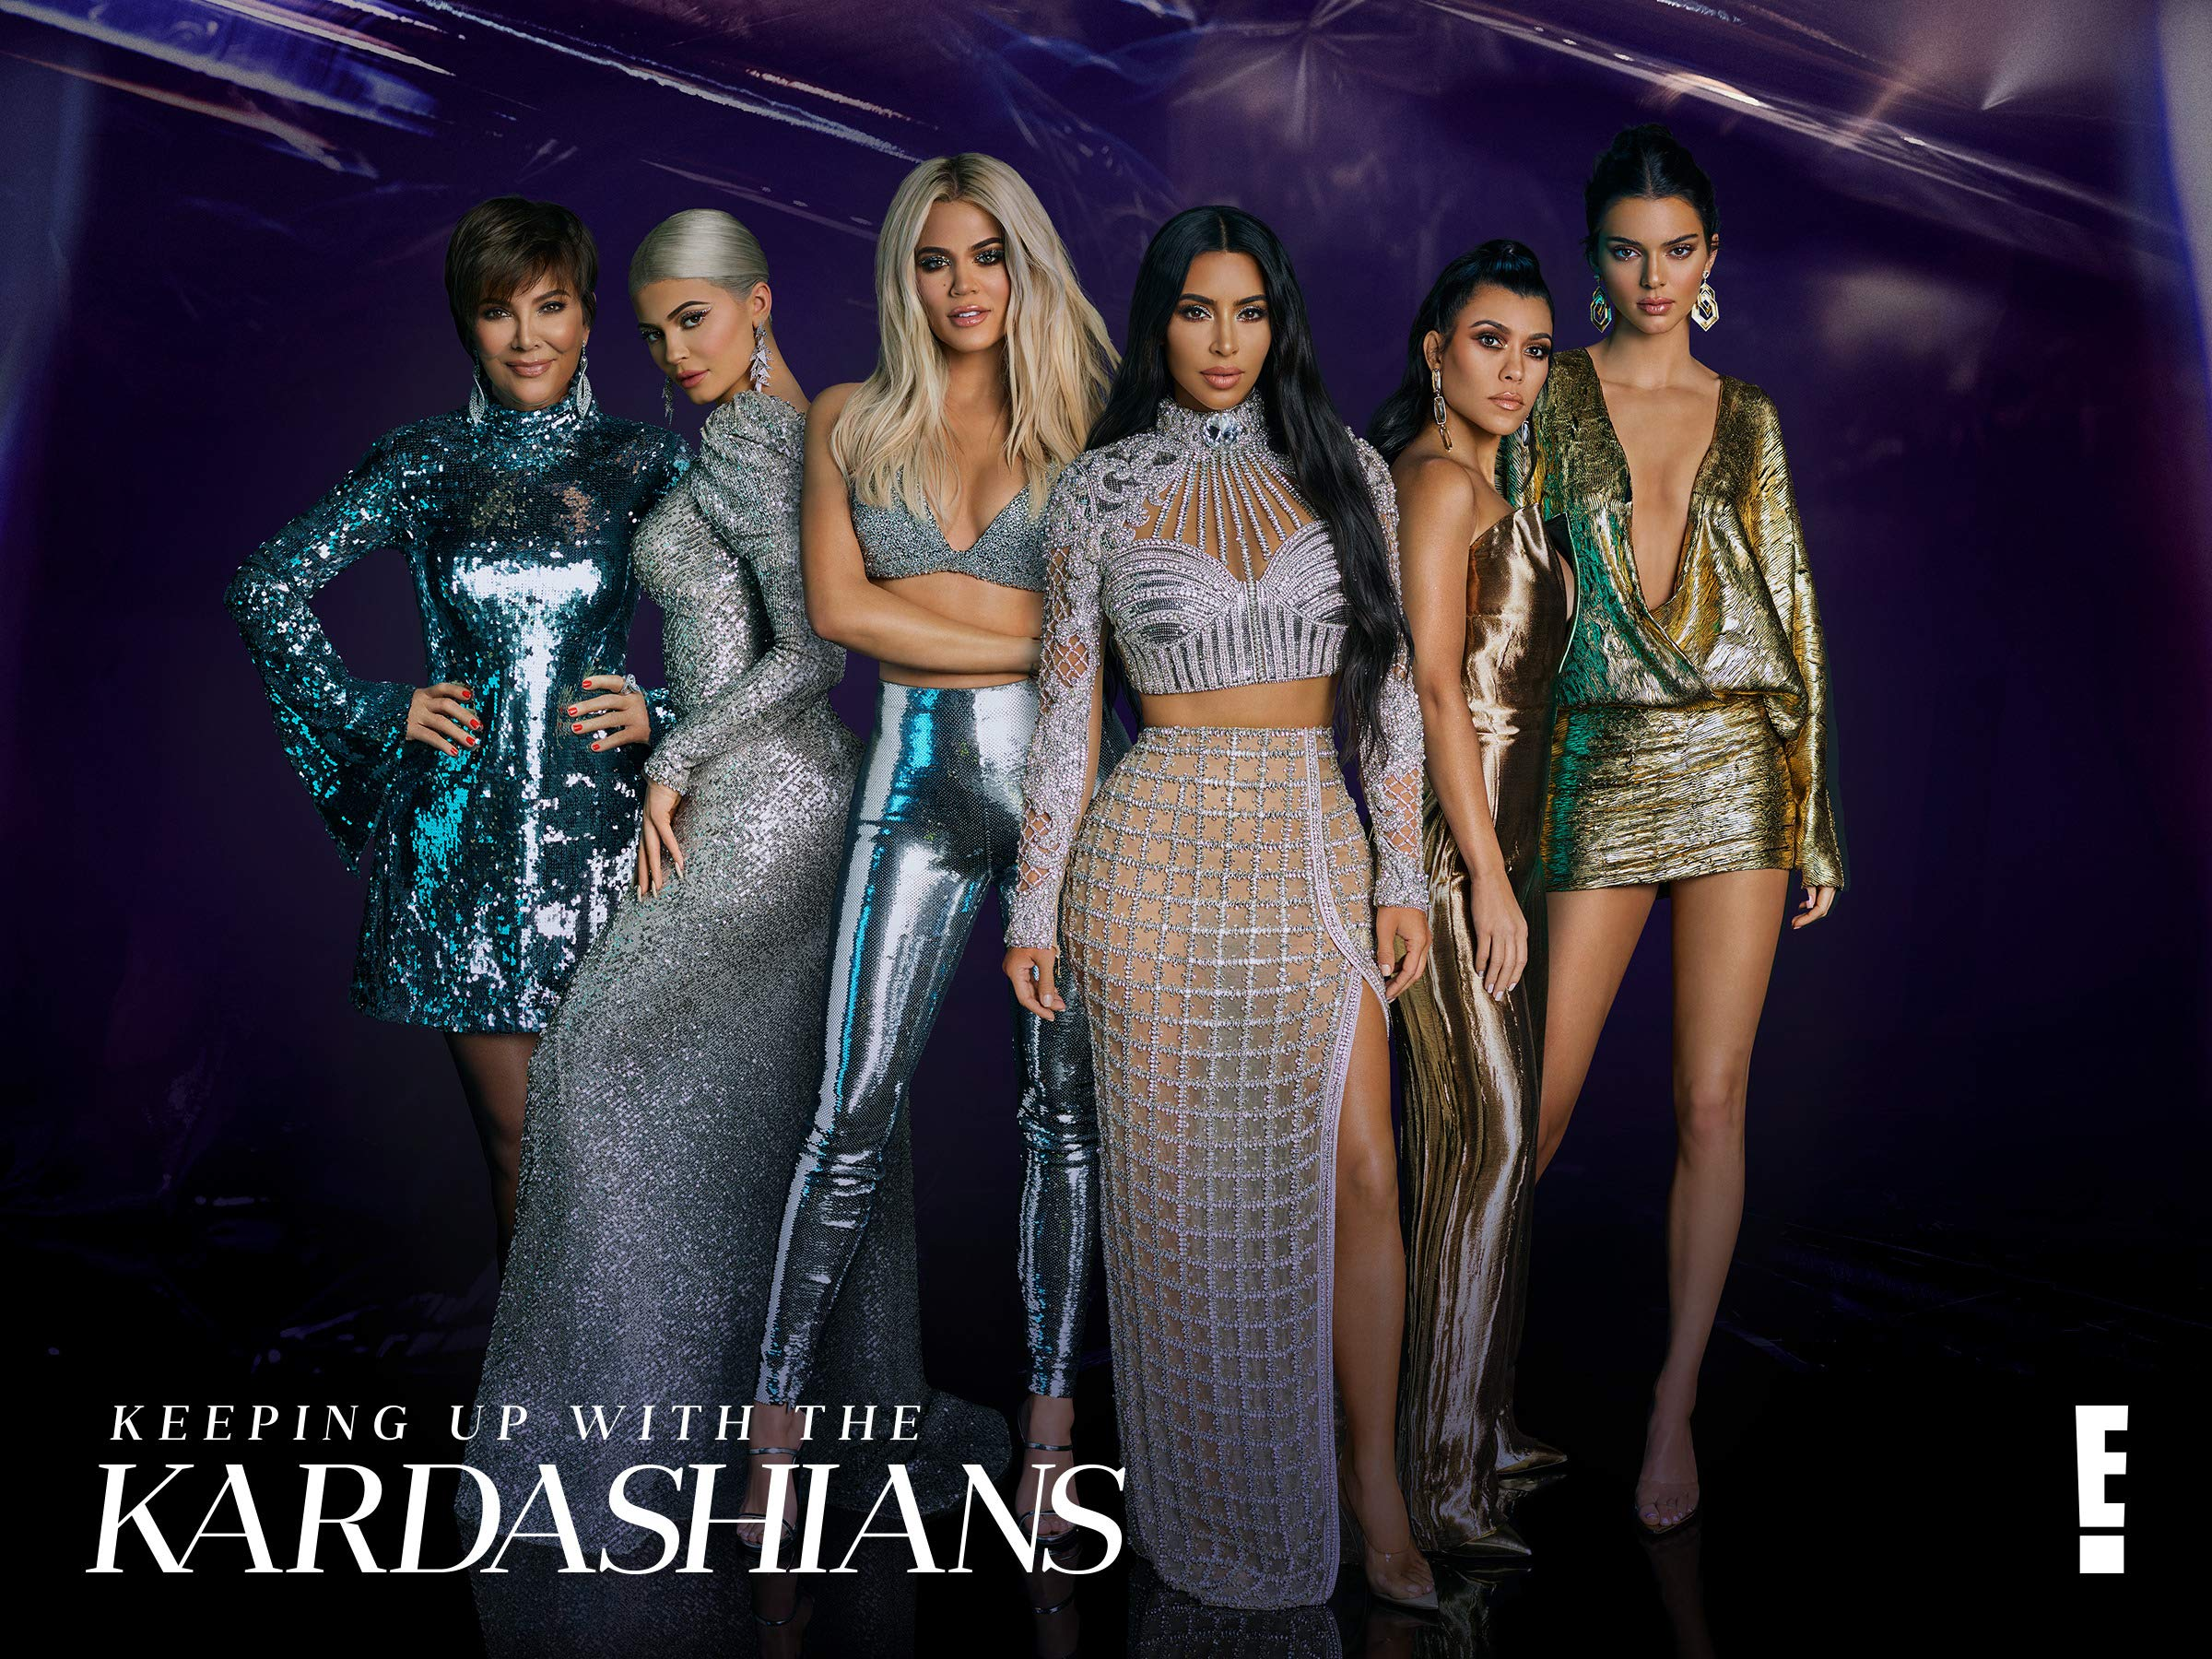 keeping up with the kardashians season 14 watch online free